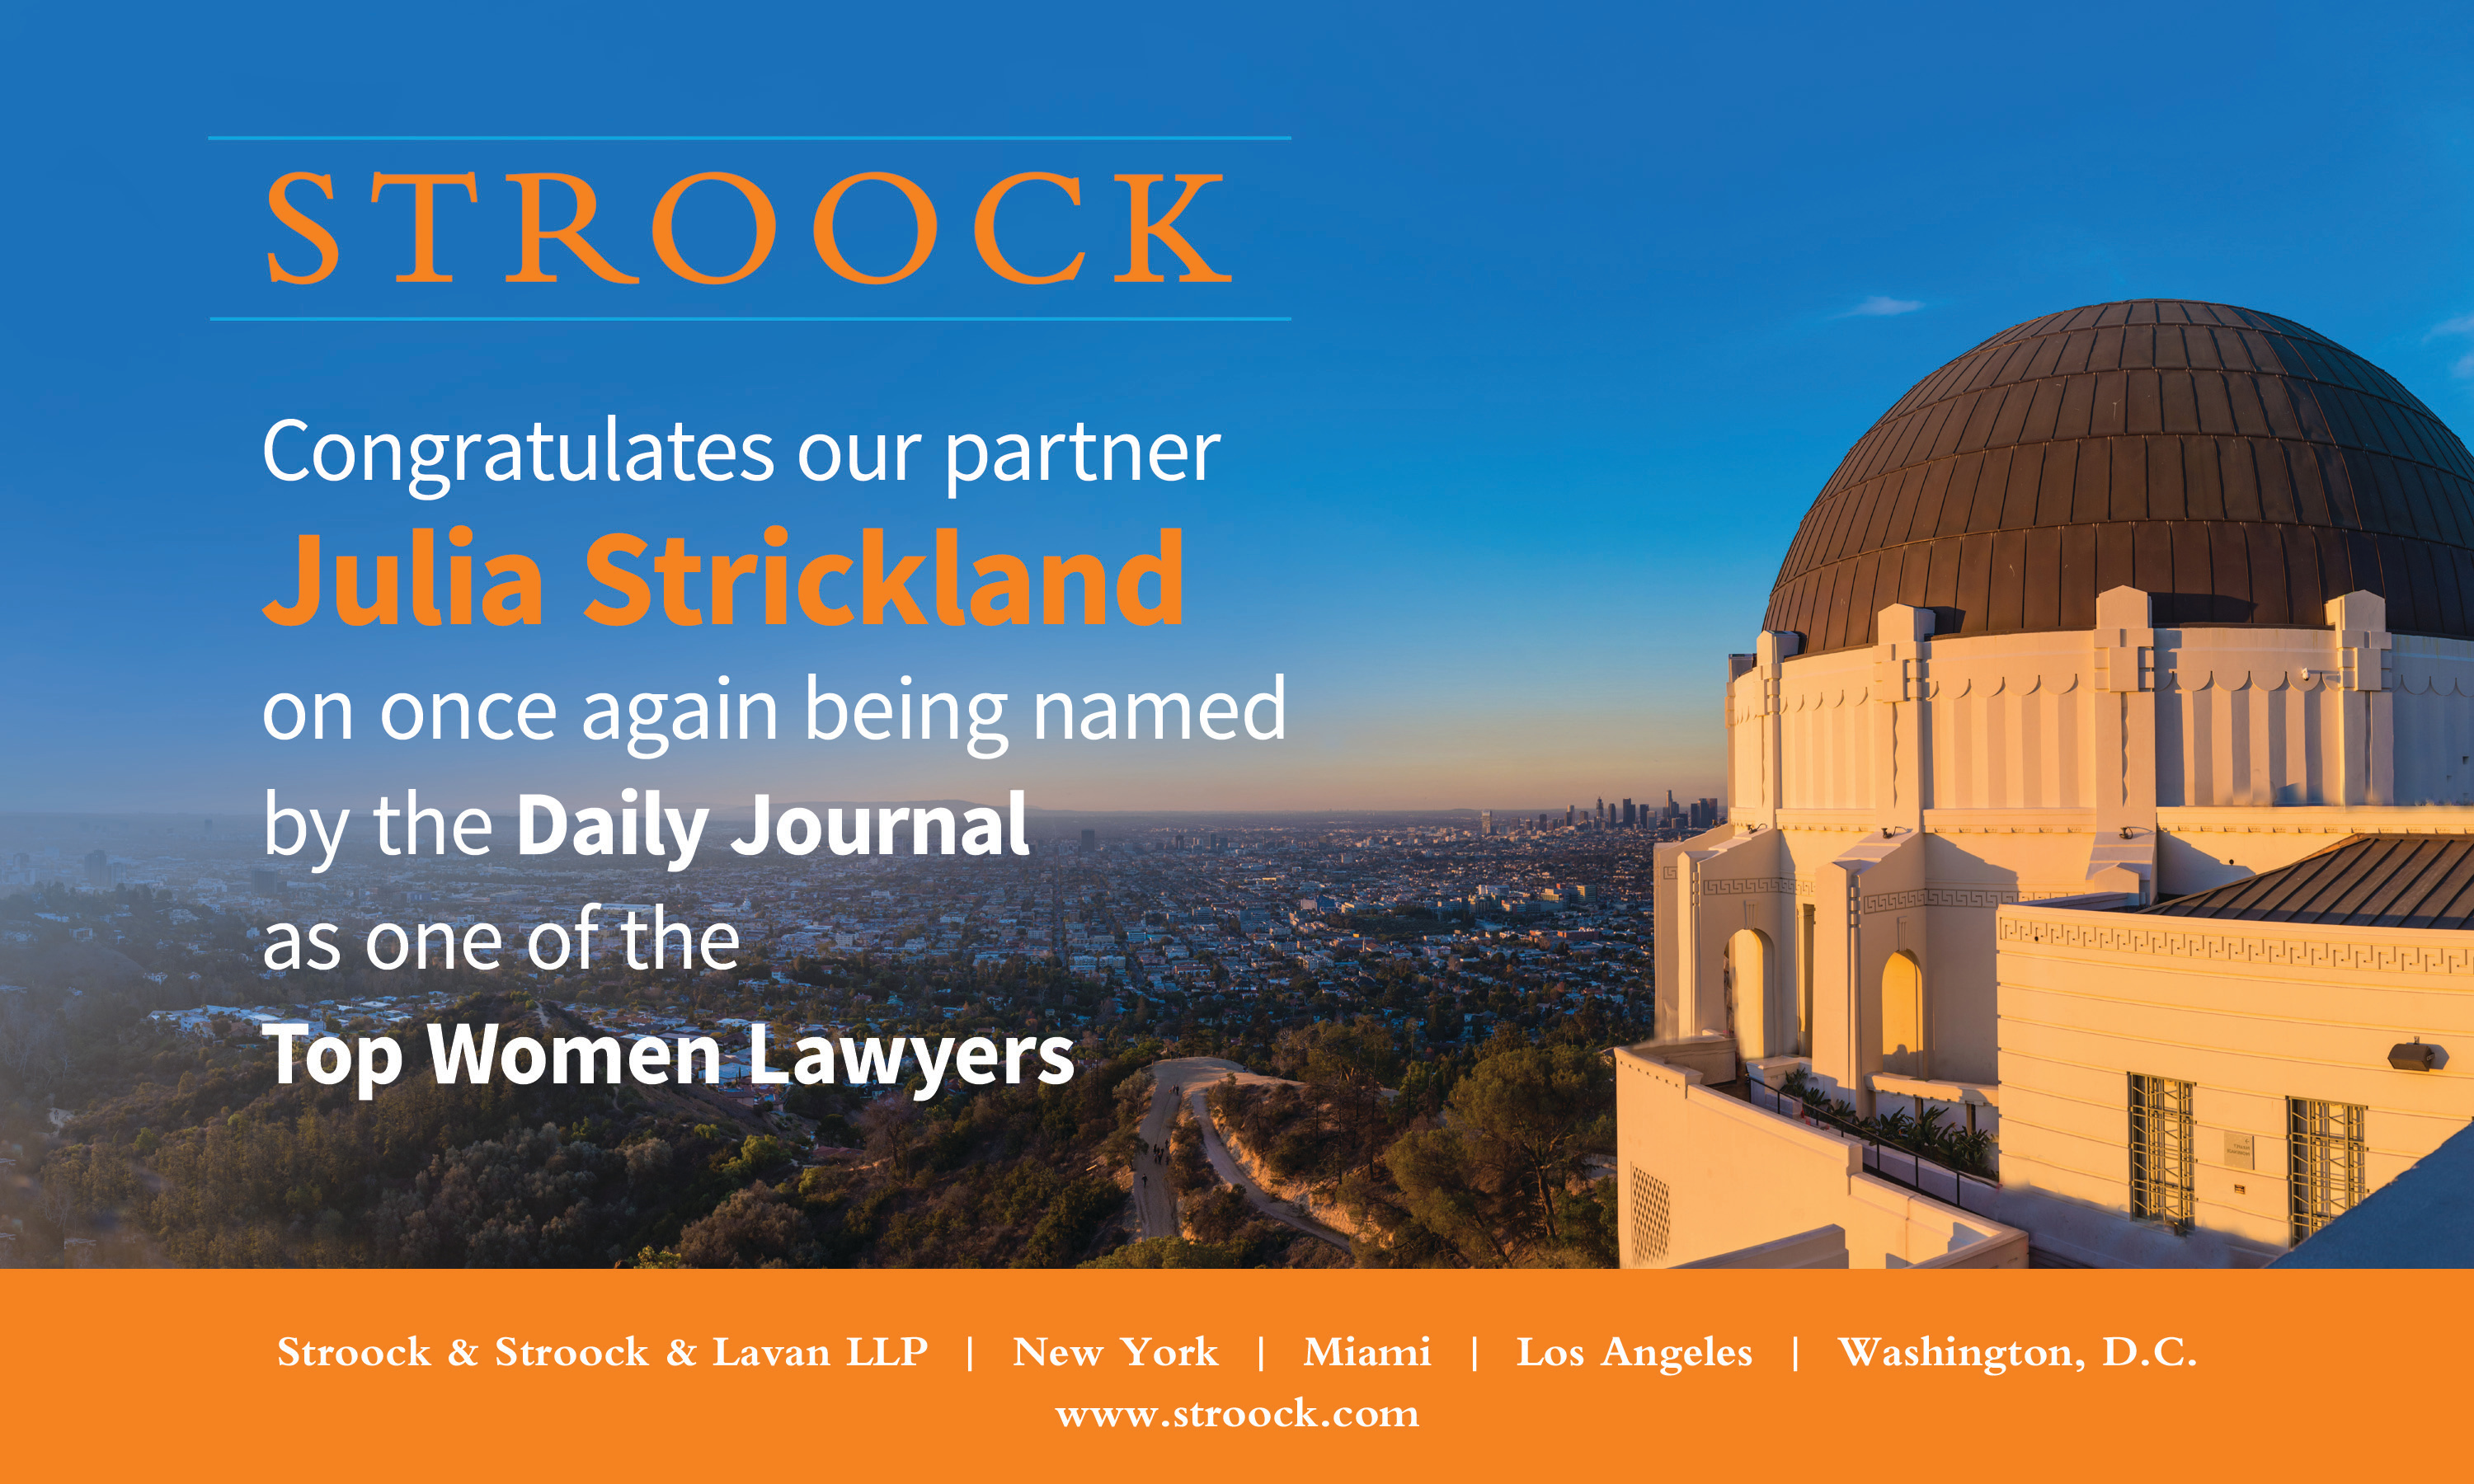 Top Women Lawyers Ad